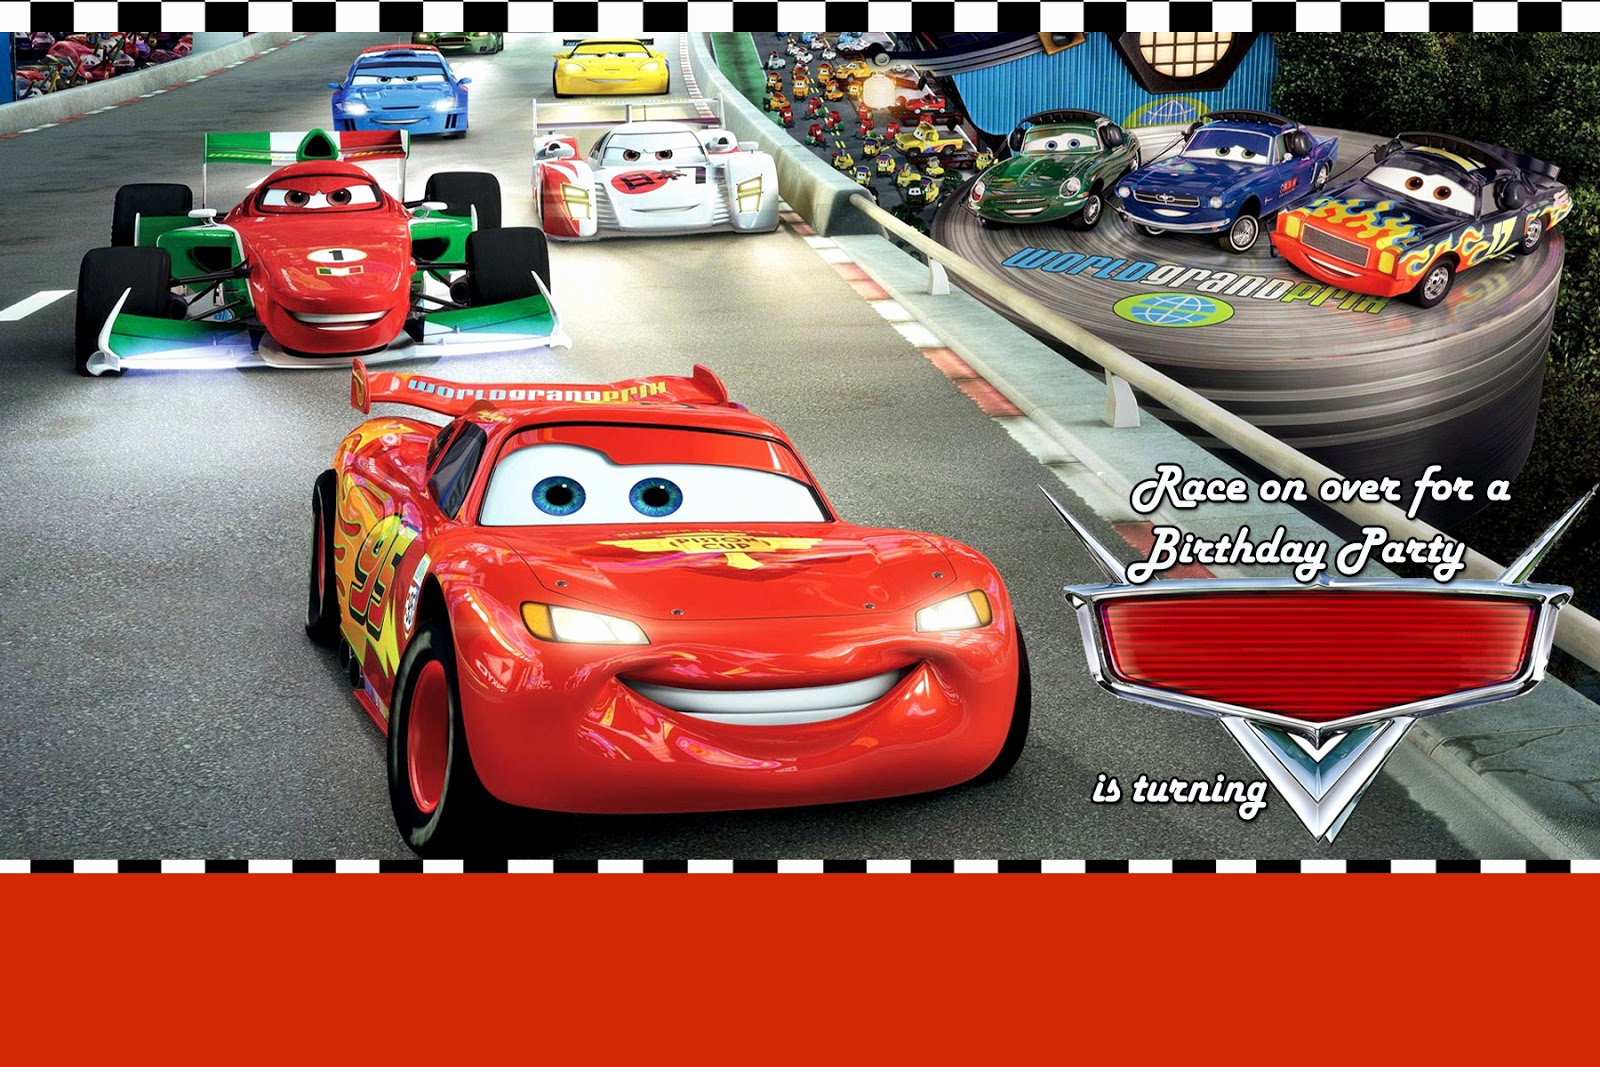 Disney Cars Invitation Template Luxury Moms Kid Party Link Disney Cars Party Invitation